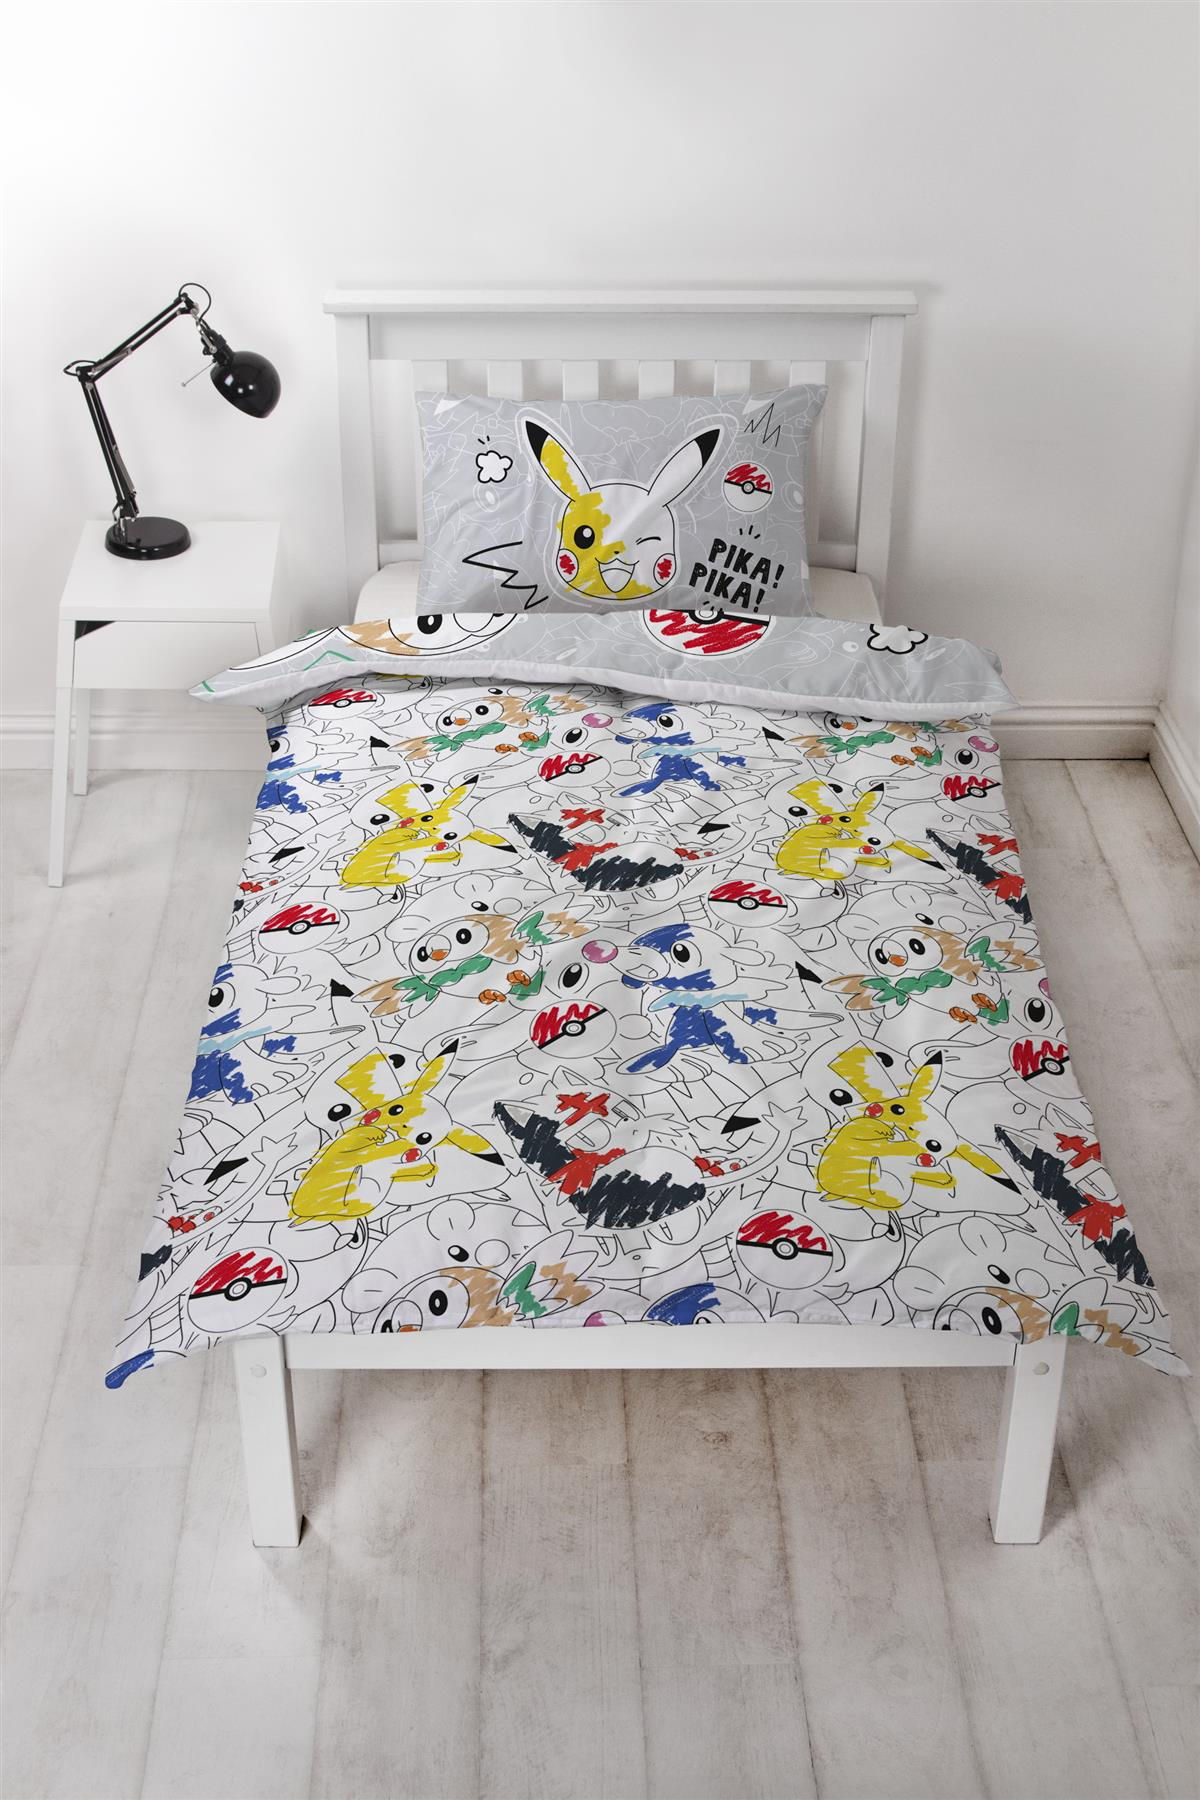 Official-Pokemon-Licensed-Duvet-Covers-Single-Double-Pikachu-Bedding-Gaming thumbnail 10